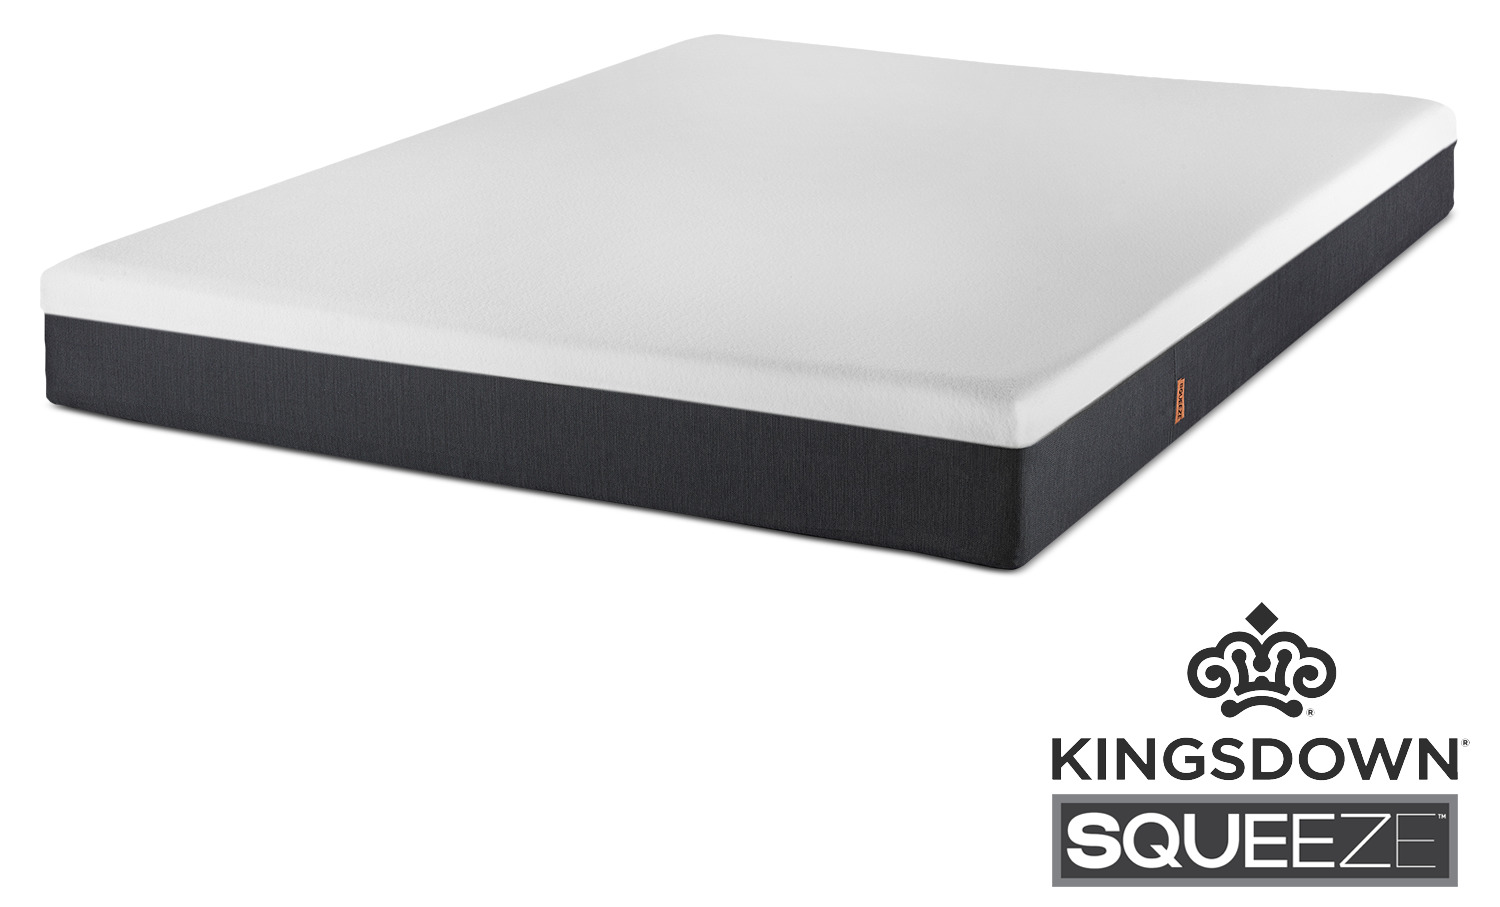 The Kingsdown Squeeze Mattress-in-a-Box Collection